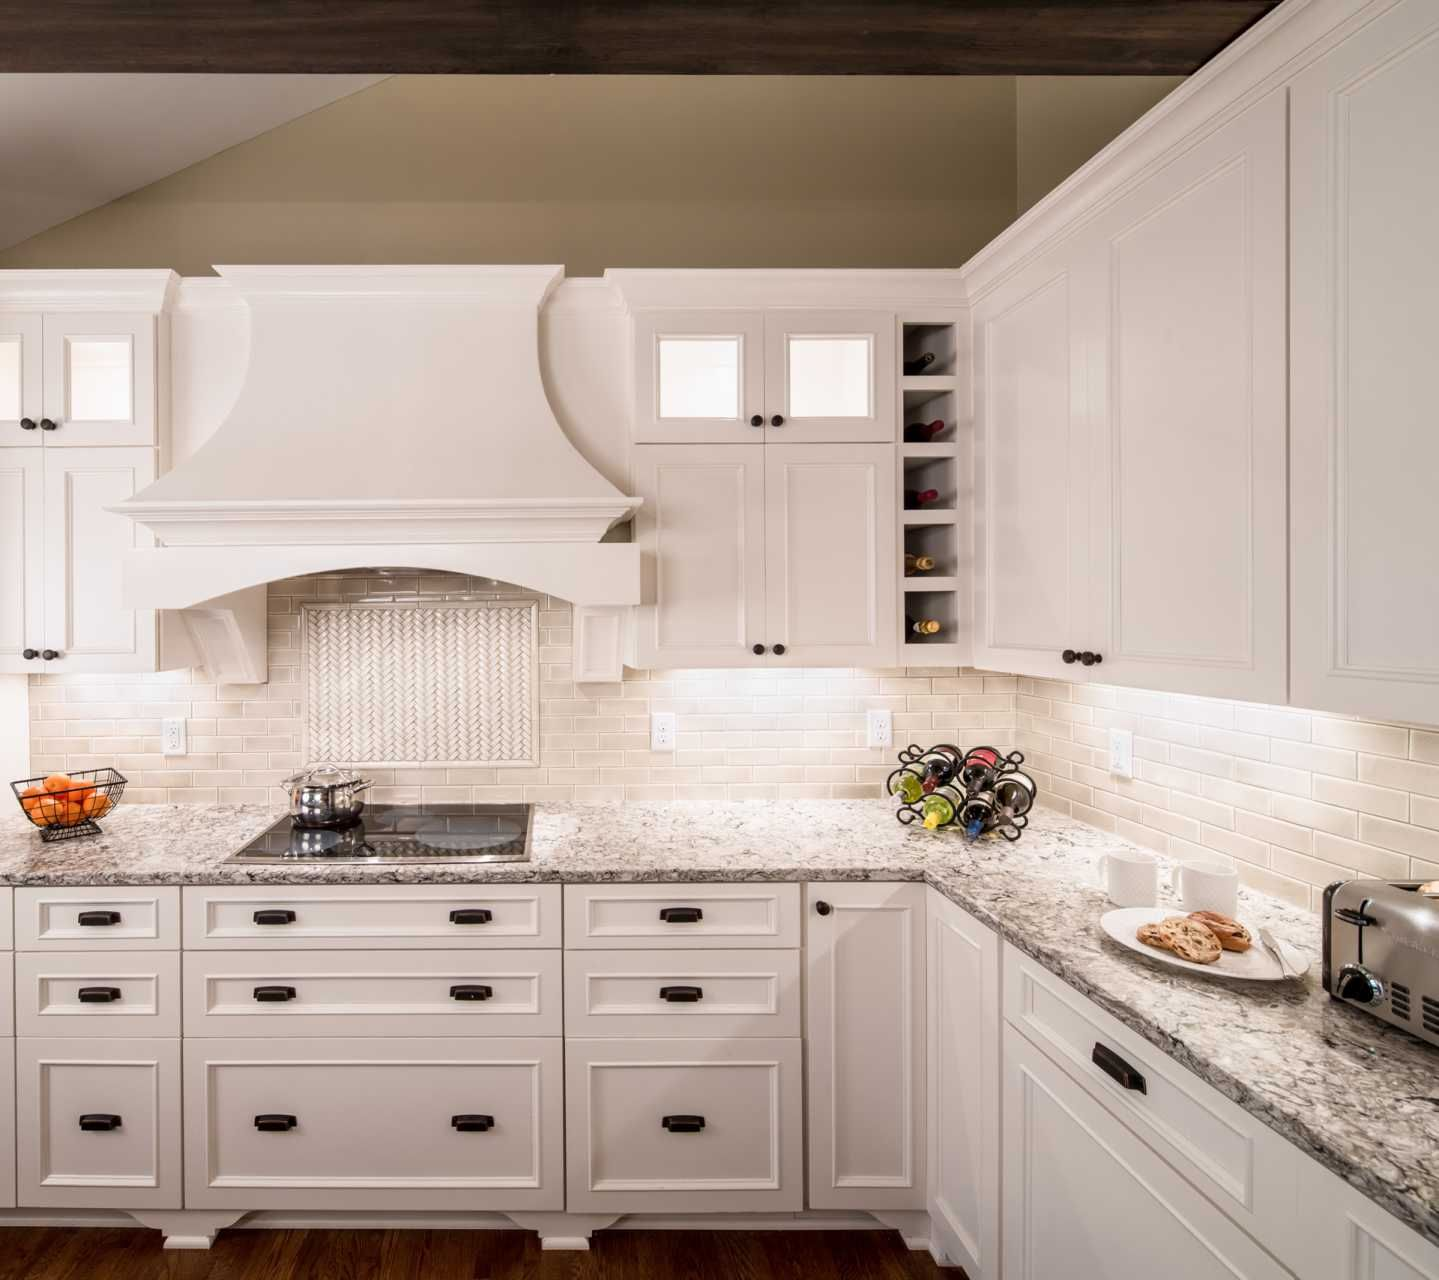 White Kitchen With Dark Backsplash: Cambria Bellingham With Dove White Cabinets, Travertine